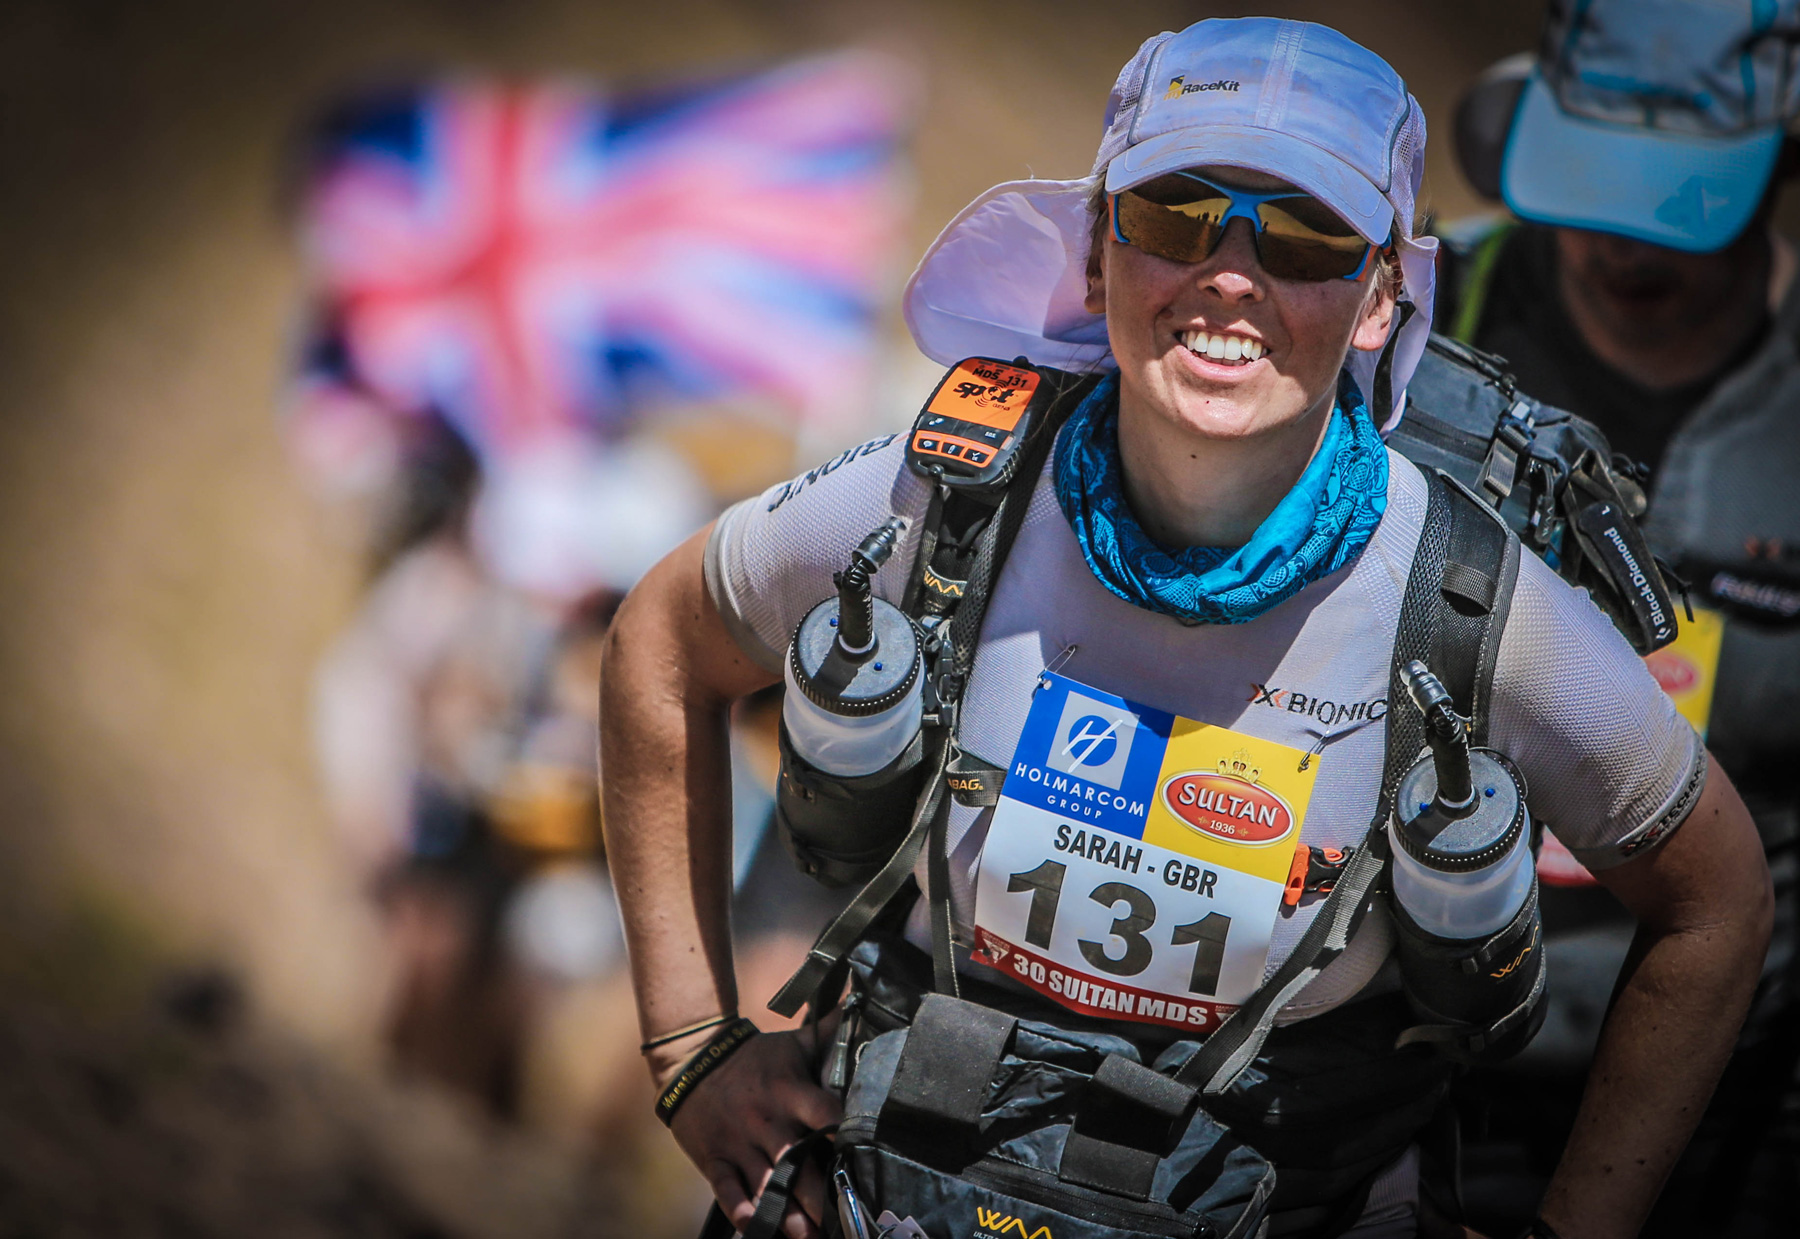 Sarah at front of long trail of competitors in desert